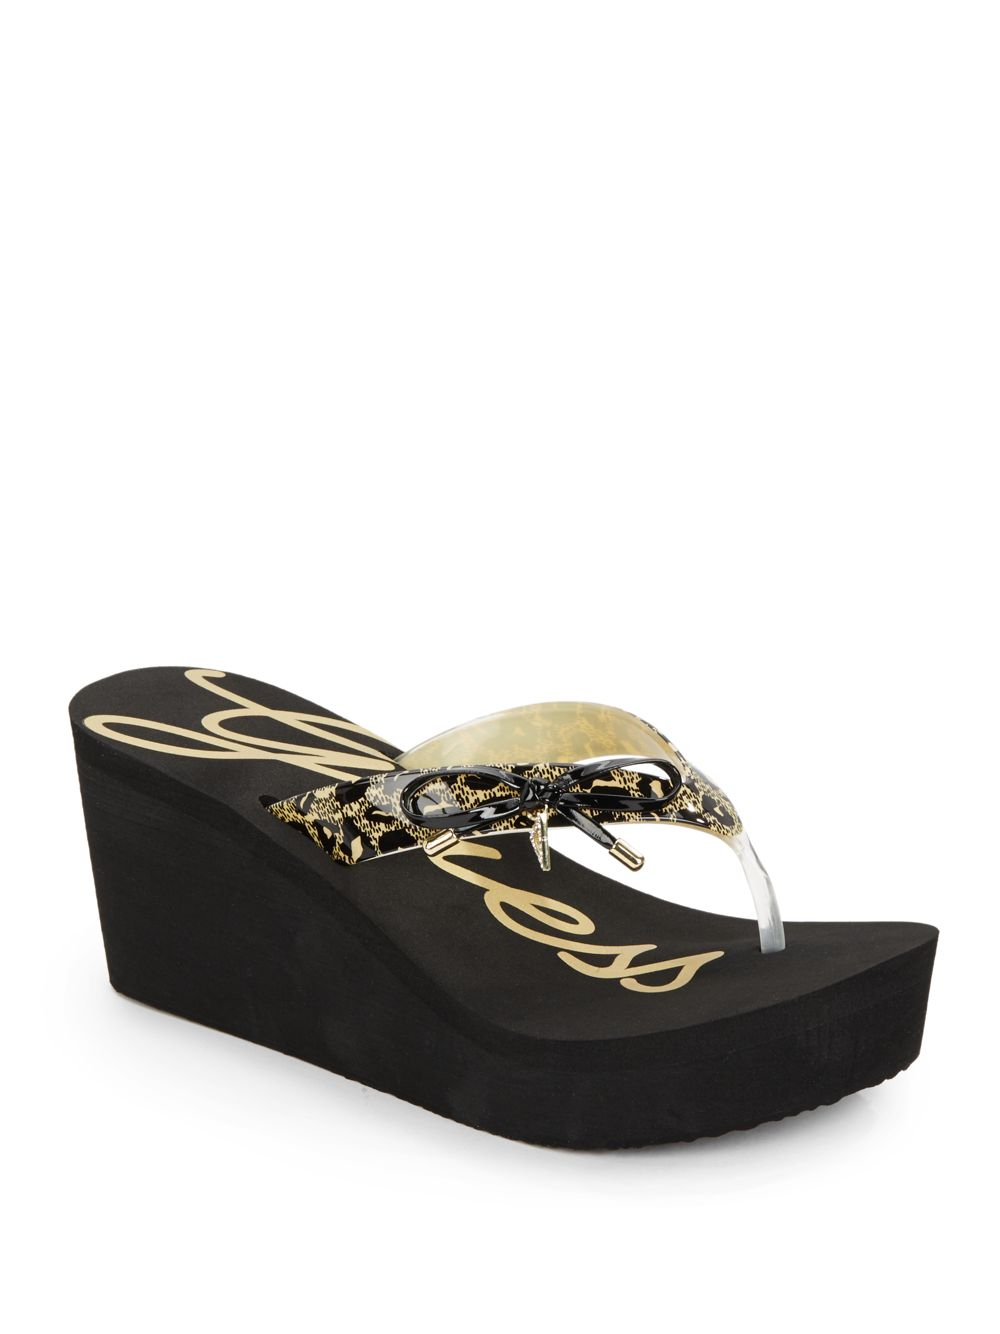 e2d0a4c97b7 Lyst - Guess Syona Leopard-Print Bow Platform Wedge Sandals in Black